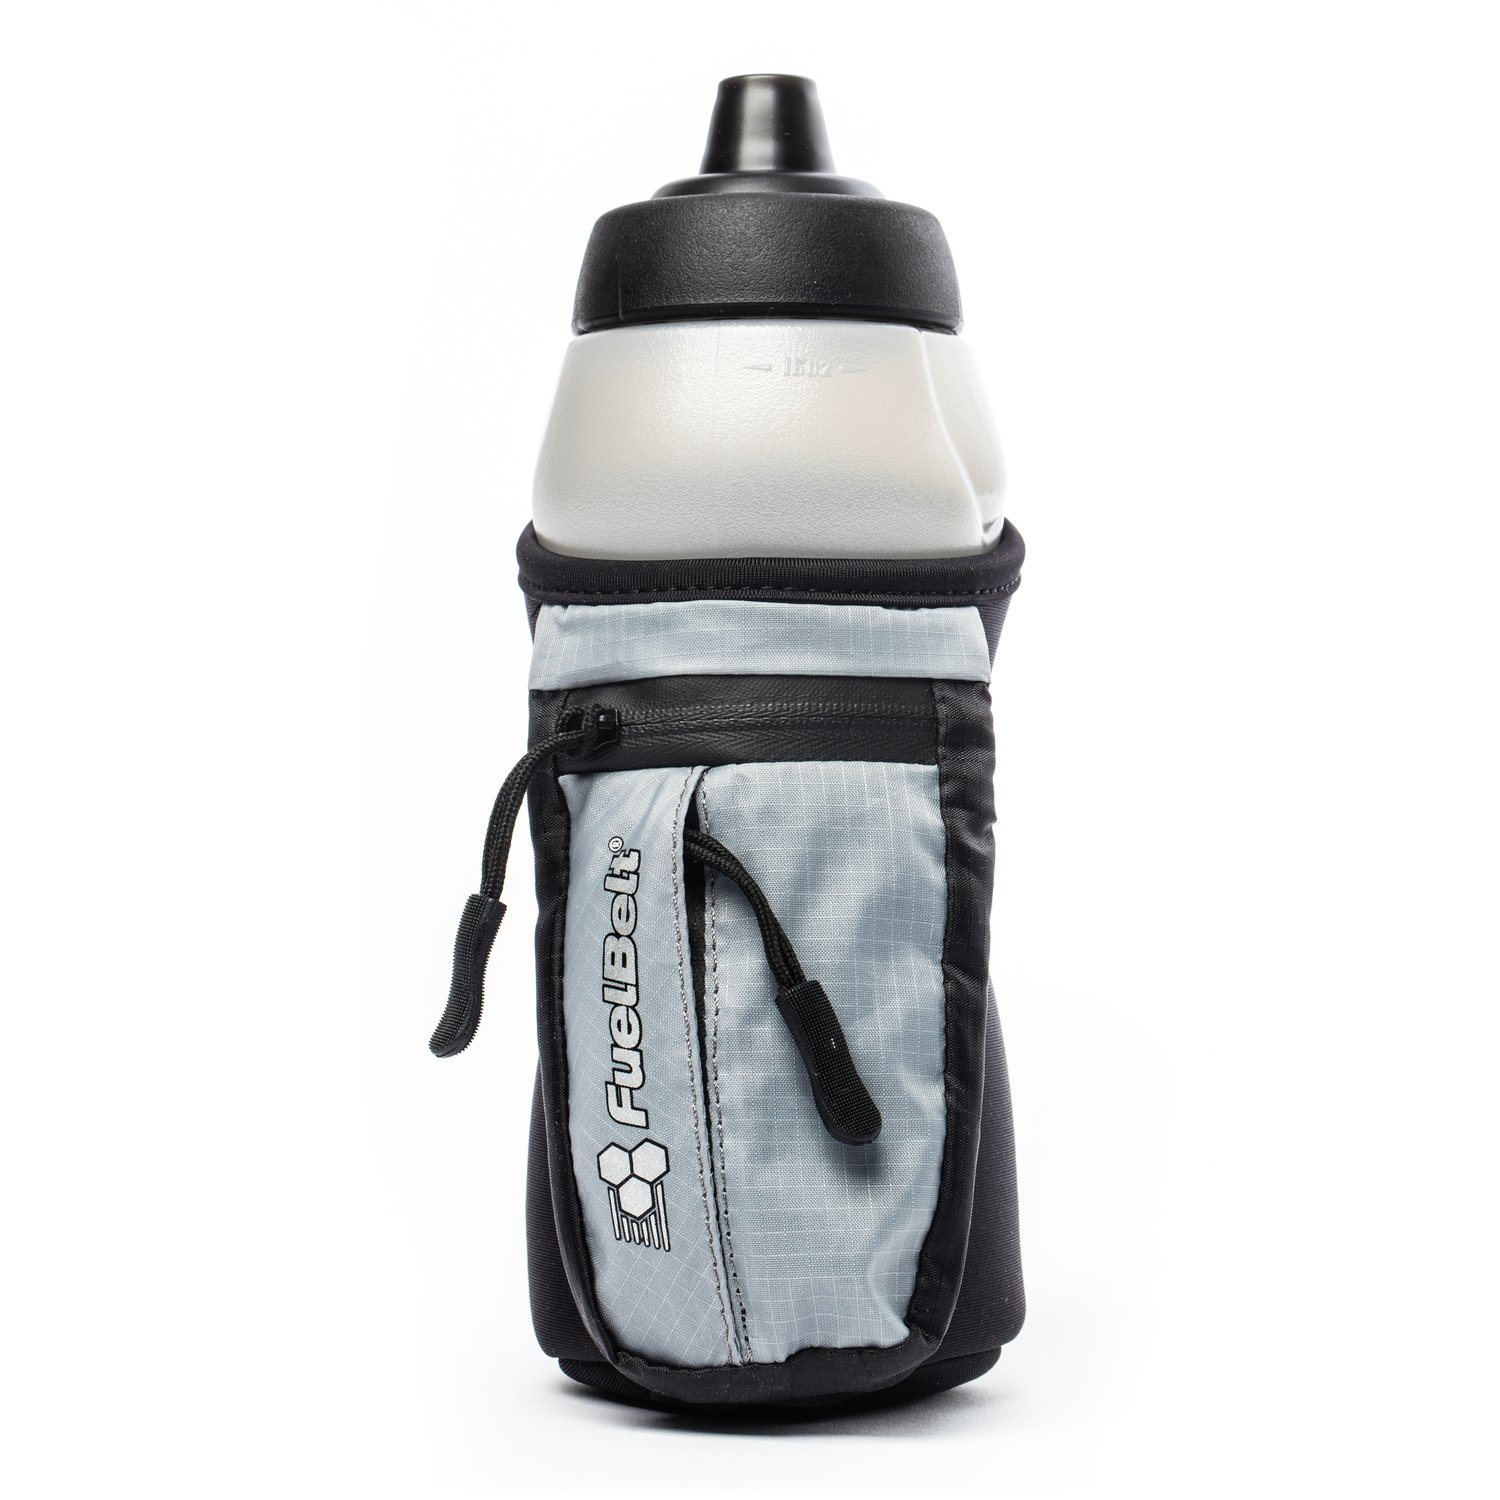 Enduro Fuel Hand-Held Running Water Bottle with Storage Pouch